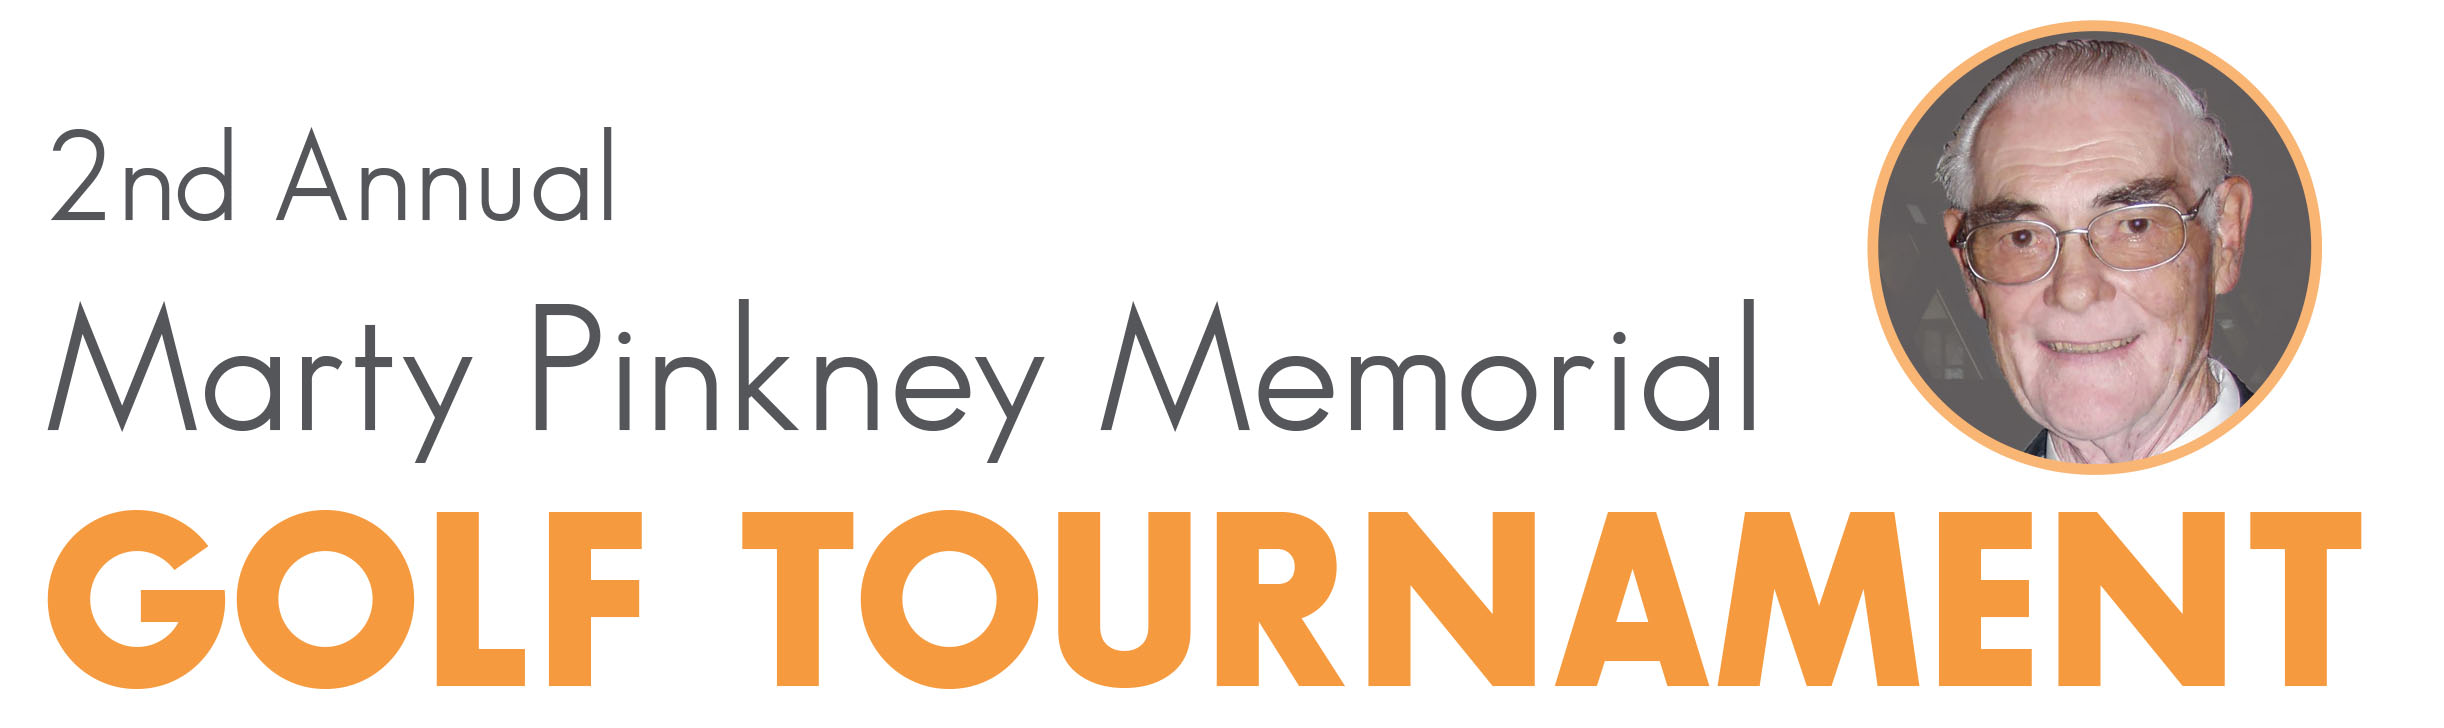 Marty Pinkney Golf Tournament